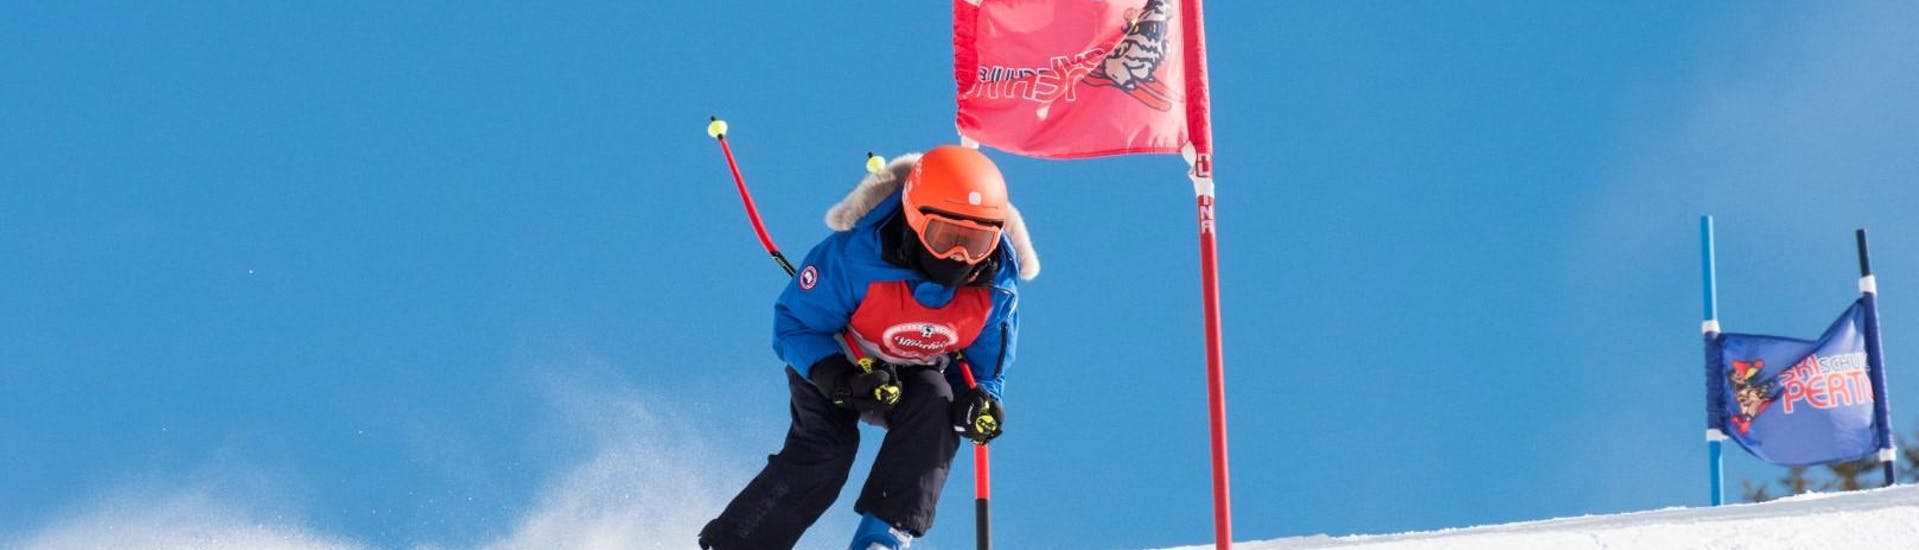 Kids Ski Lessons (6-17 y.) for All Levels with Skischule Pertl Turracher Höhe - Hero image